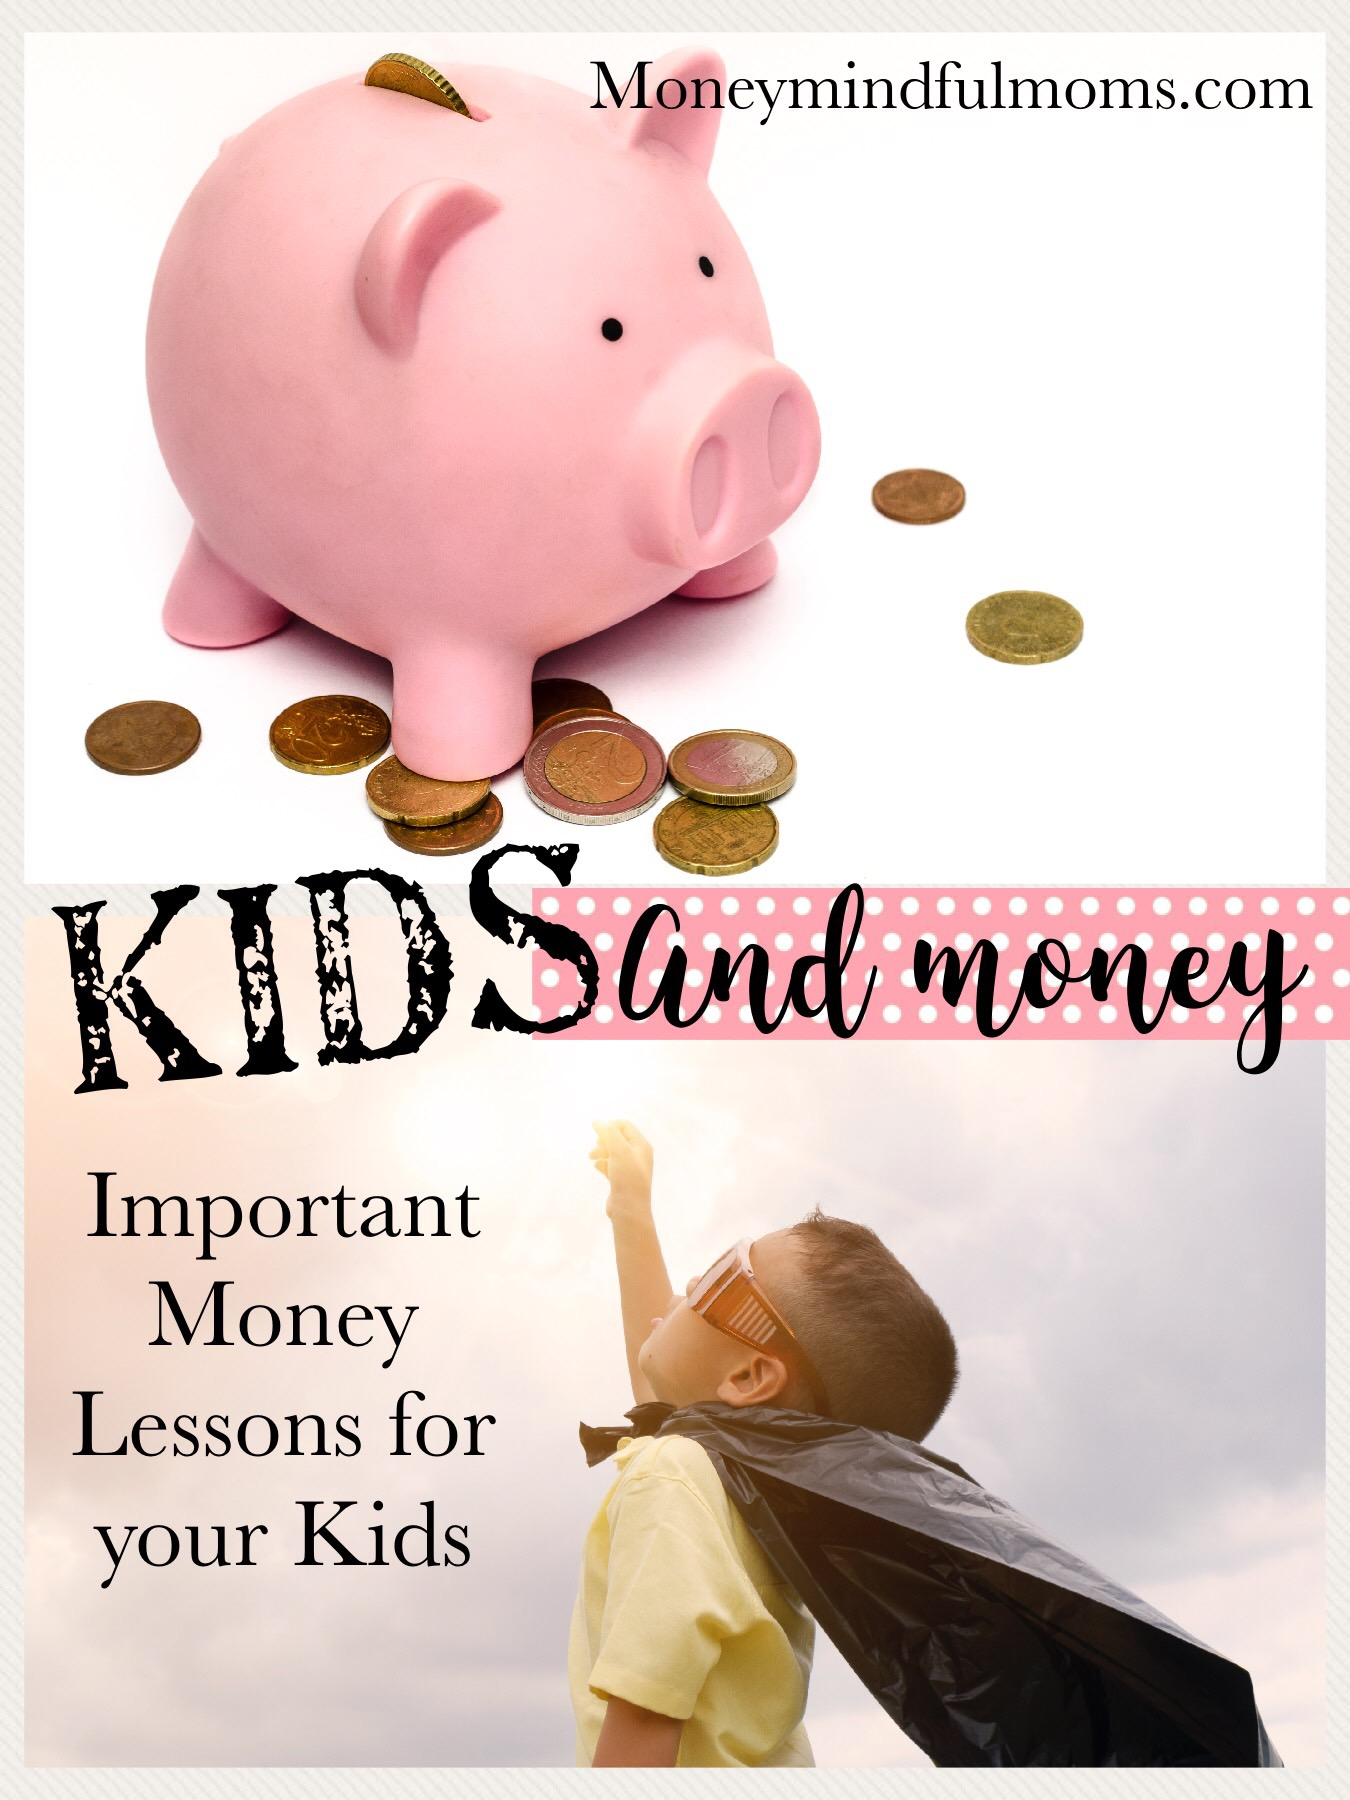 Teaching your kids good money habits